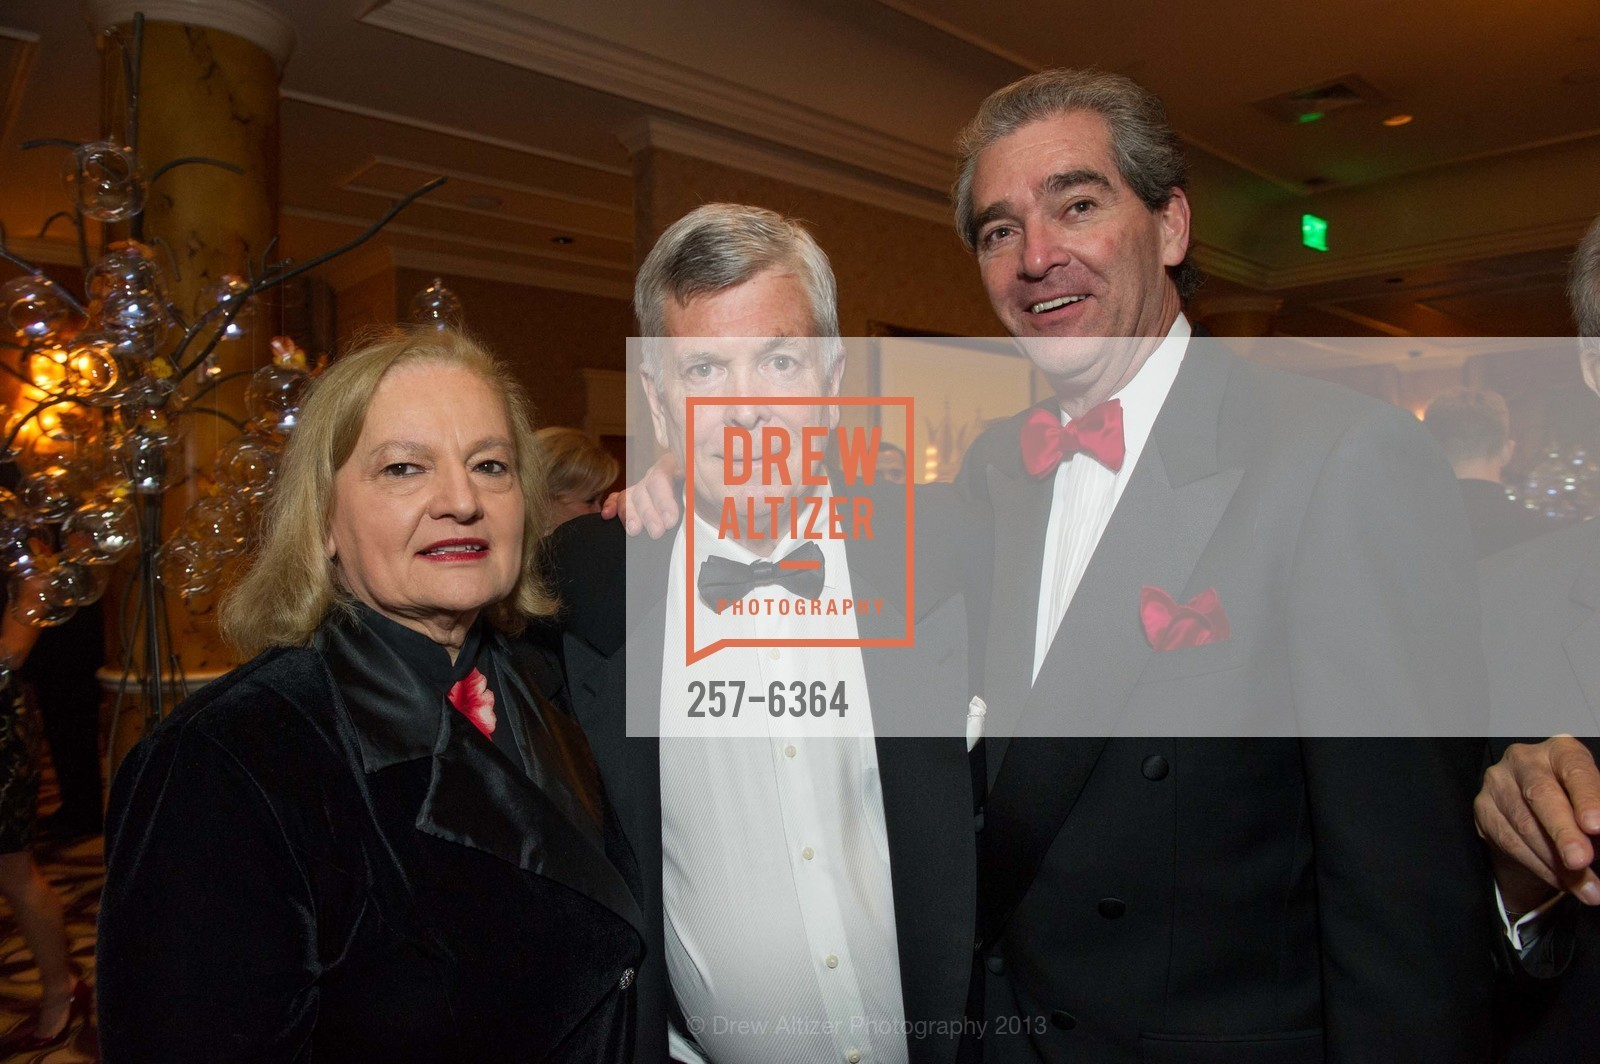 Paula Fillari, Tom Hennessy, Robert Eves, 25th Anniversary Holiday HOB NOB ON THE HILL, US, December 6th, 2013,Drew Altizer, Drew Altizer Photography, full-service agency, private events, San Francisco photographer, photographer california